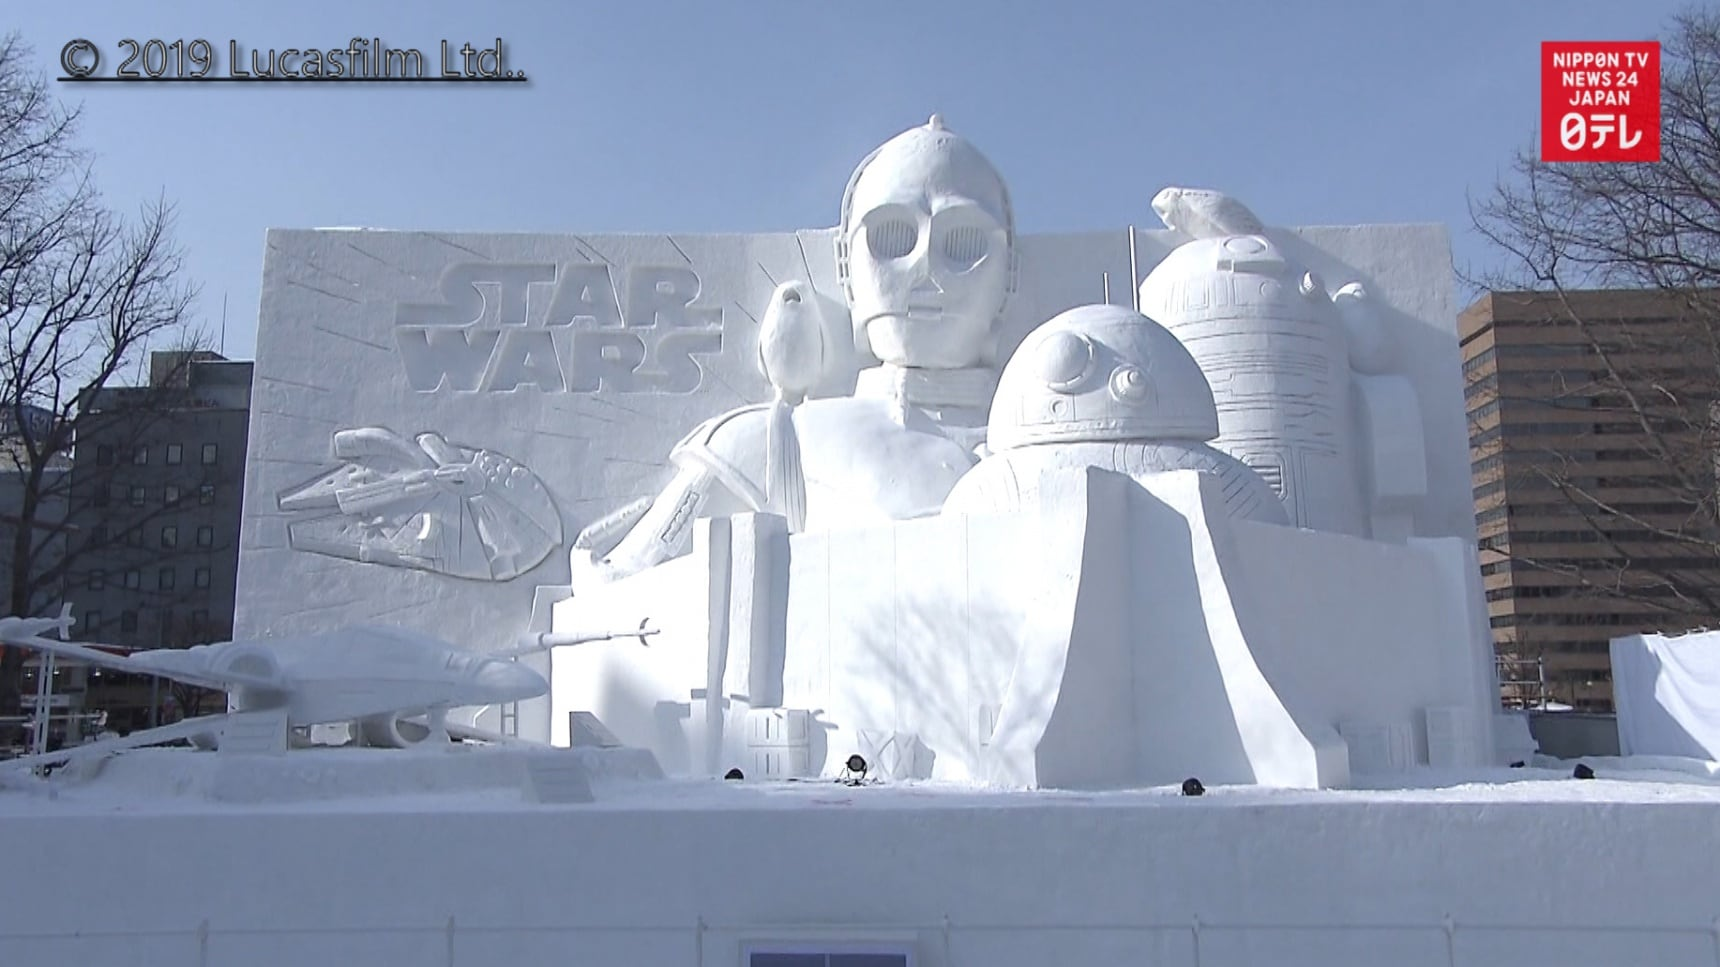 The 70th Sapporo Snow Festival Kicks Off